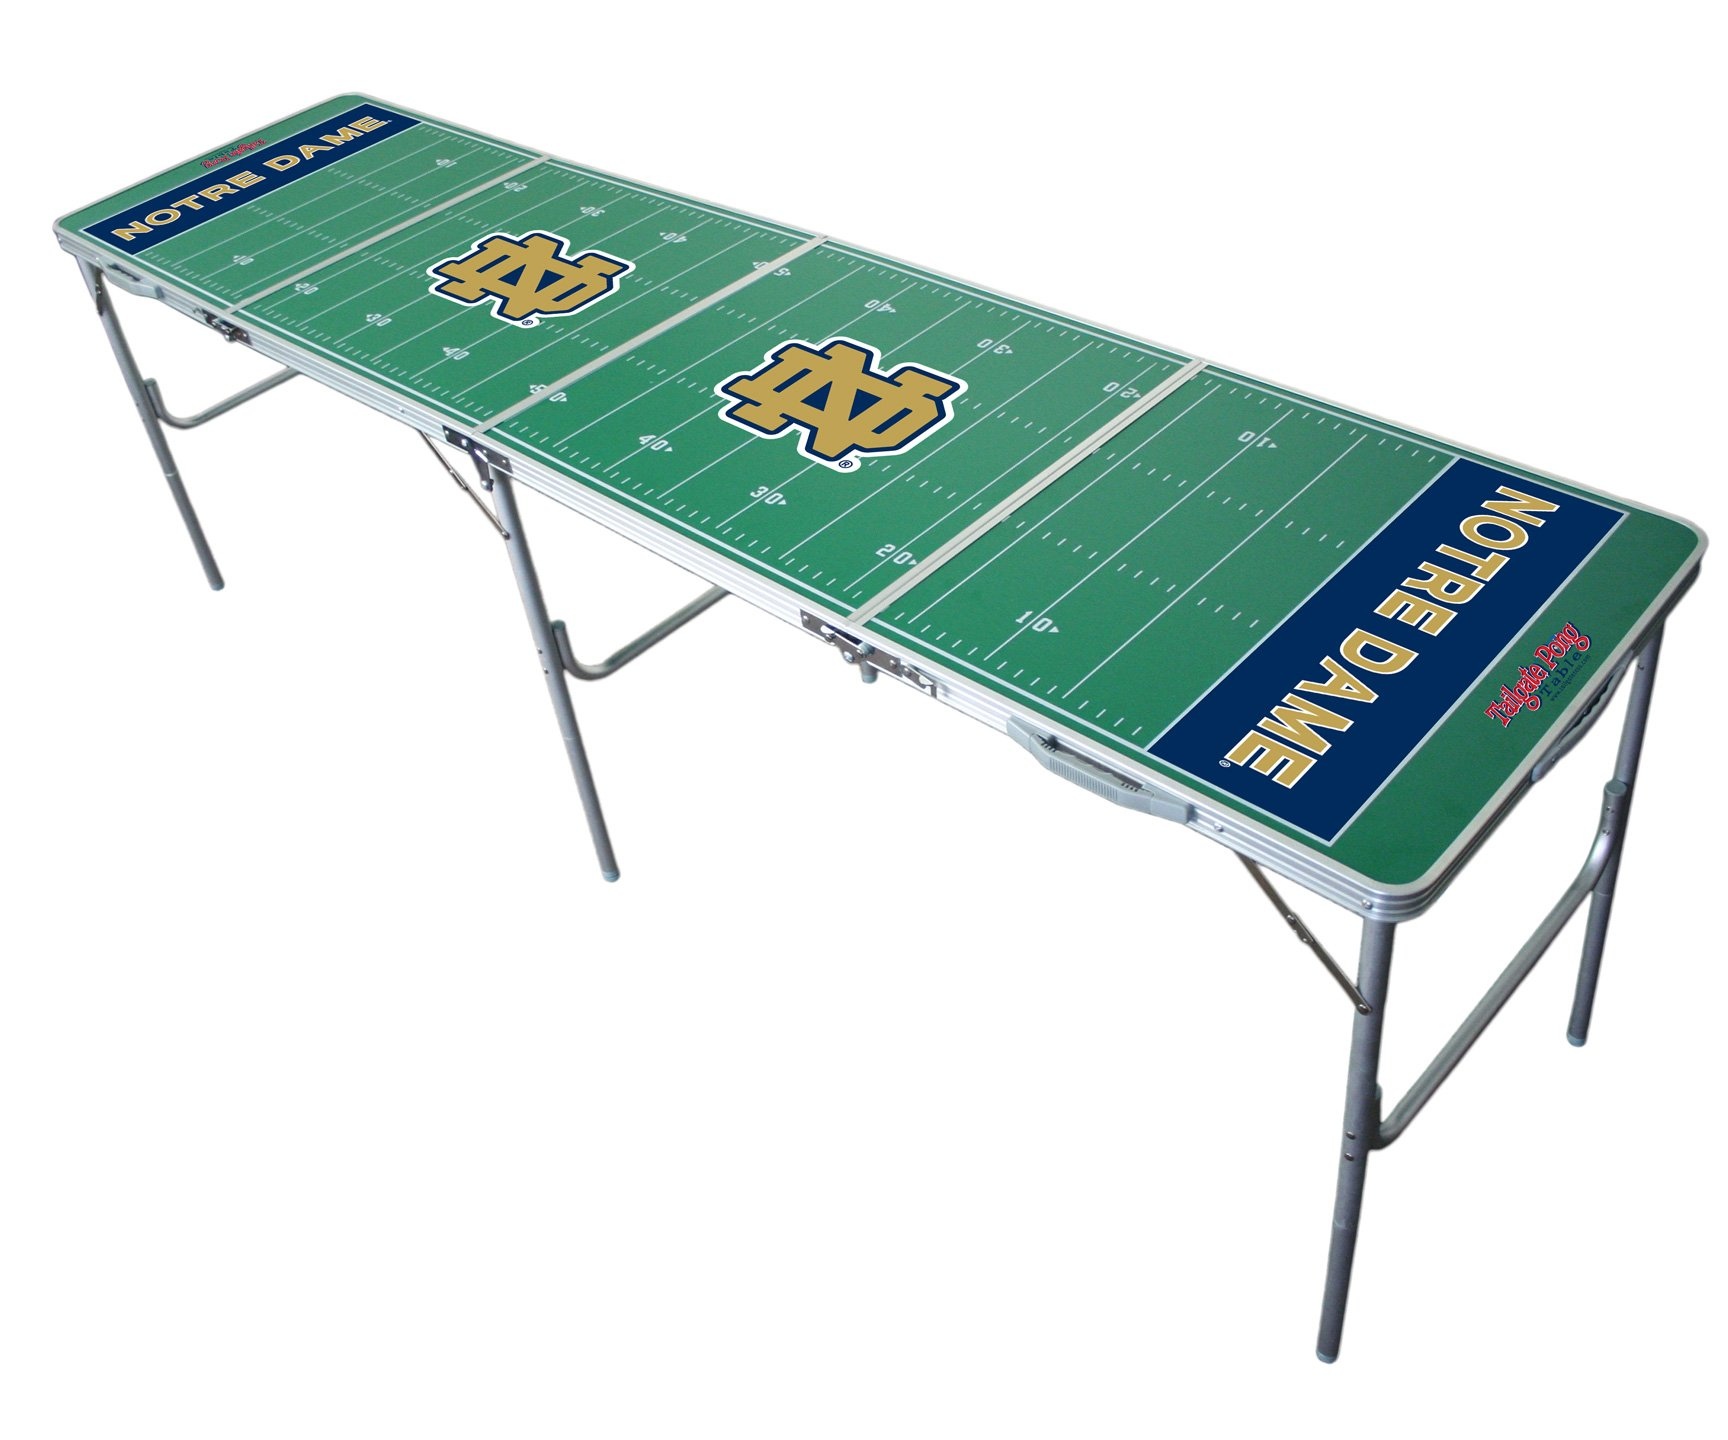 Notre Dame Fighting Irish 2x8 Tailgate Table by Wild Sports by Wild Sports